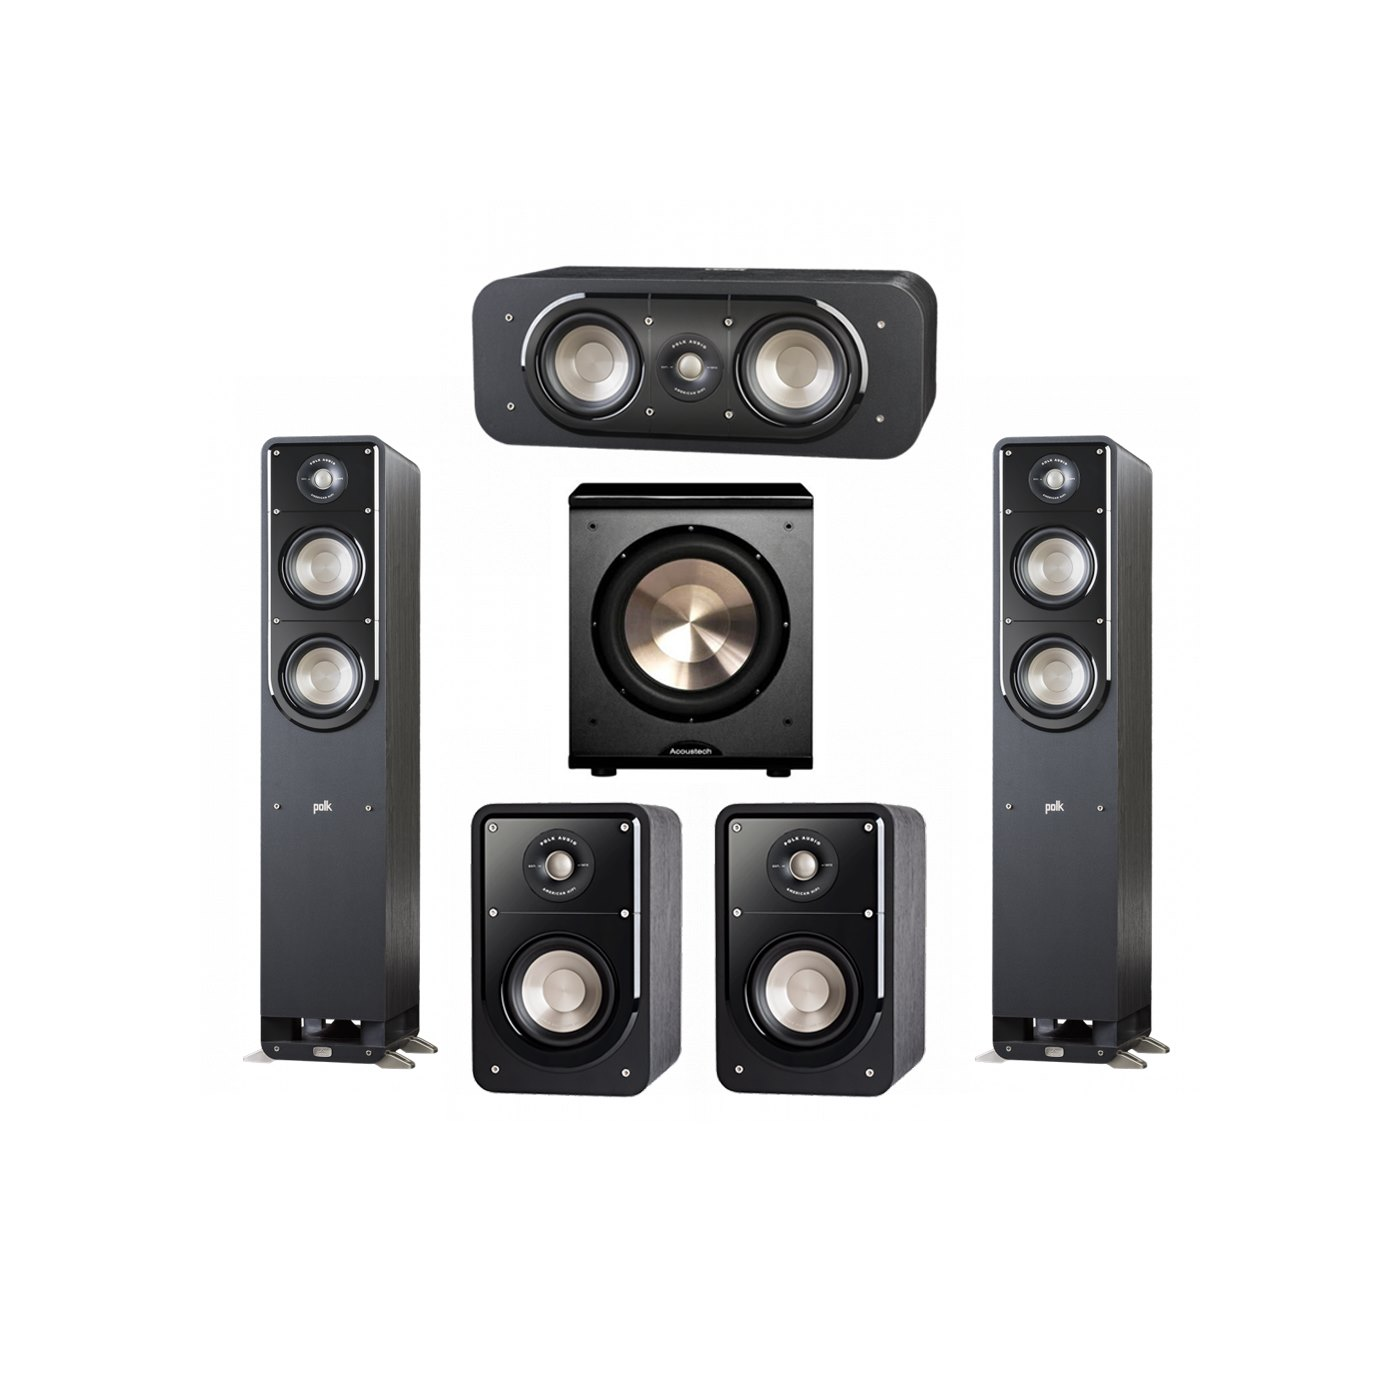 Polk Audio Signature 5.1 System with 2 S50 Tower Speaker, 1 Polk S30 Center Speaker, 2 Polk S15 Bookshelf Speaker, 1 BIC/Acoustech Platinum Series PL-200 Subwoofer